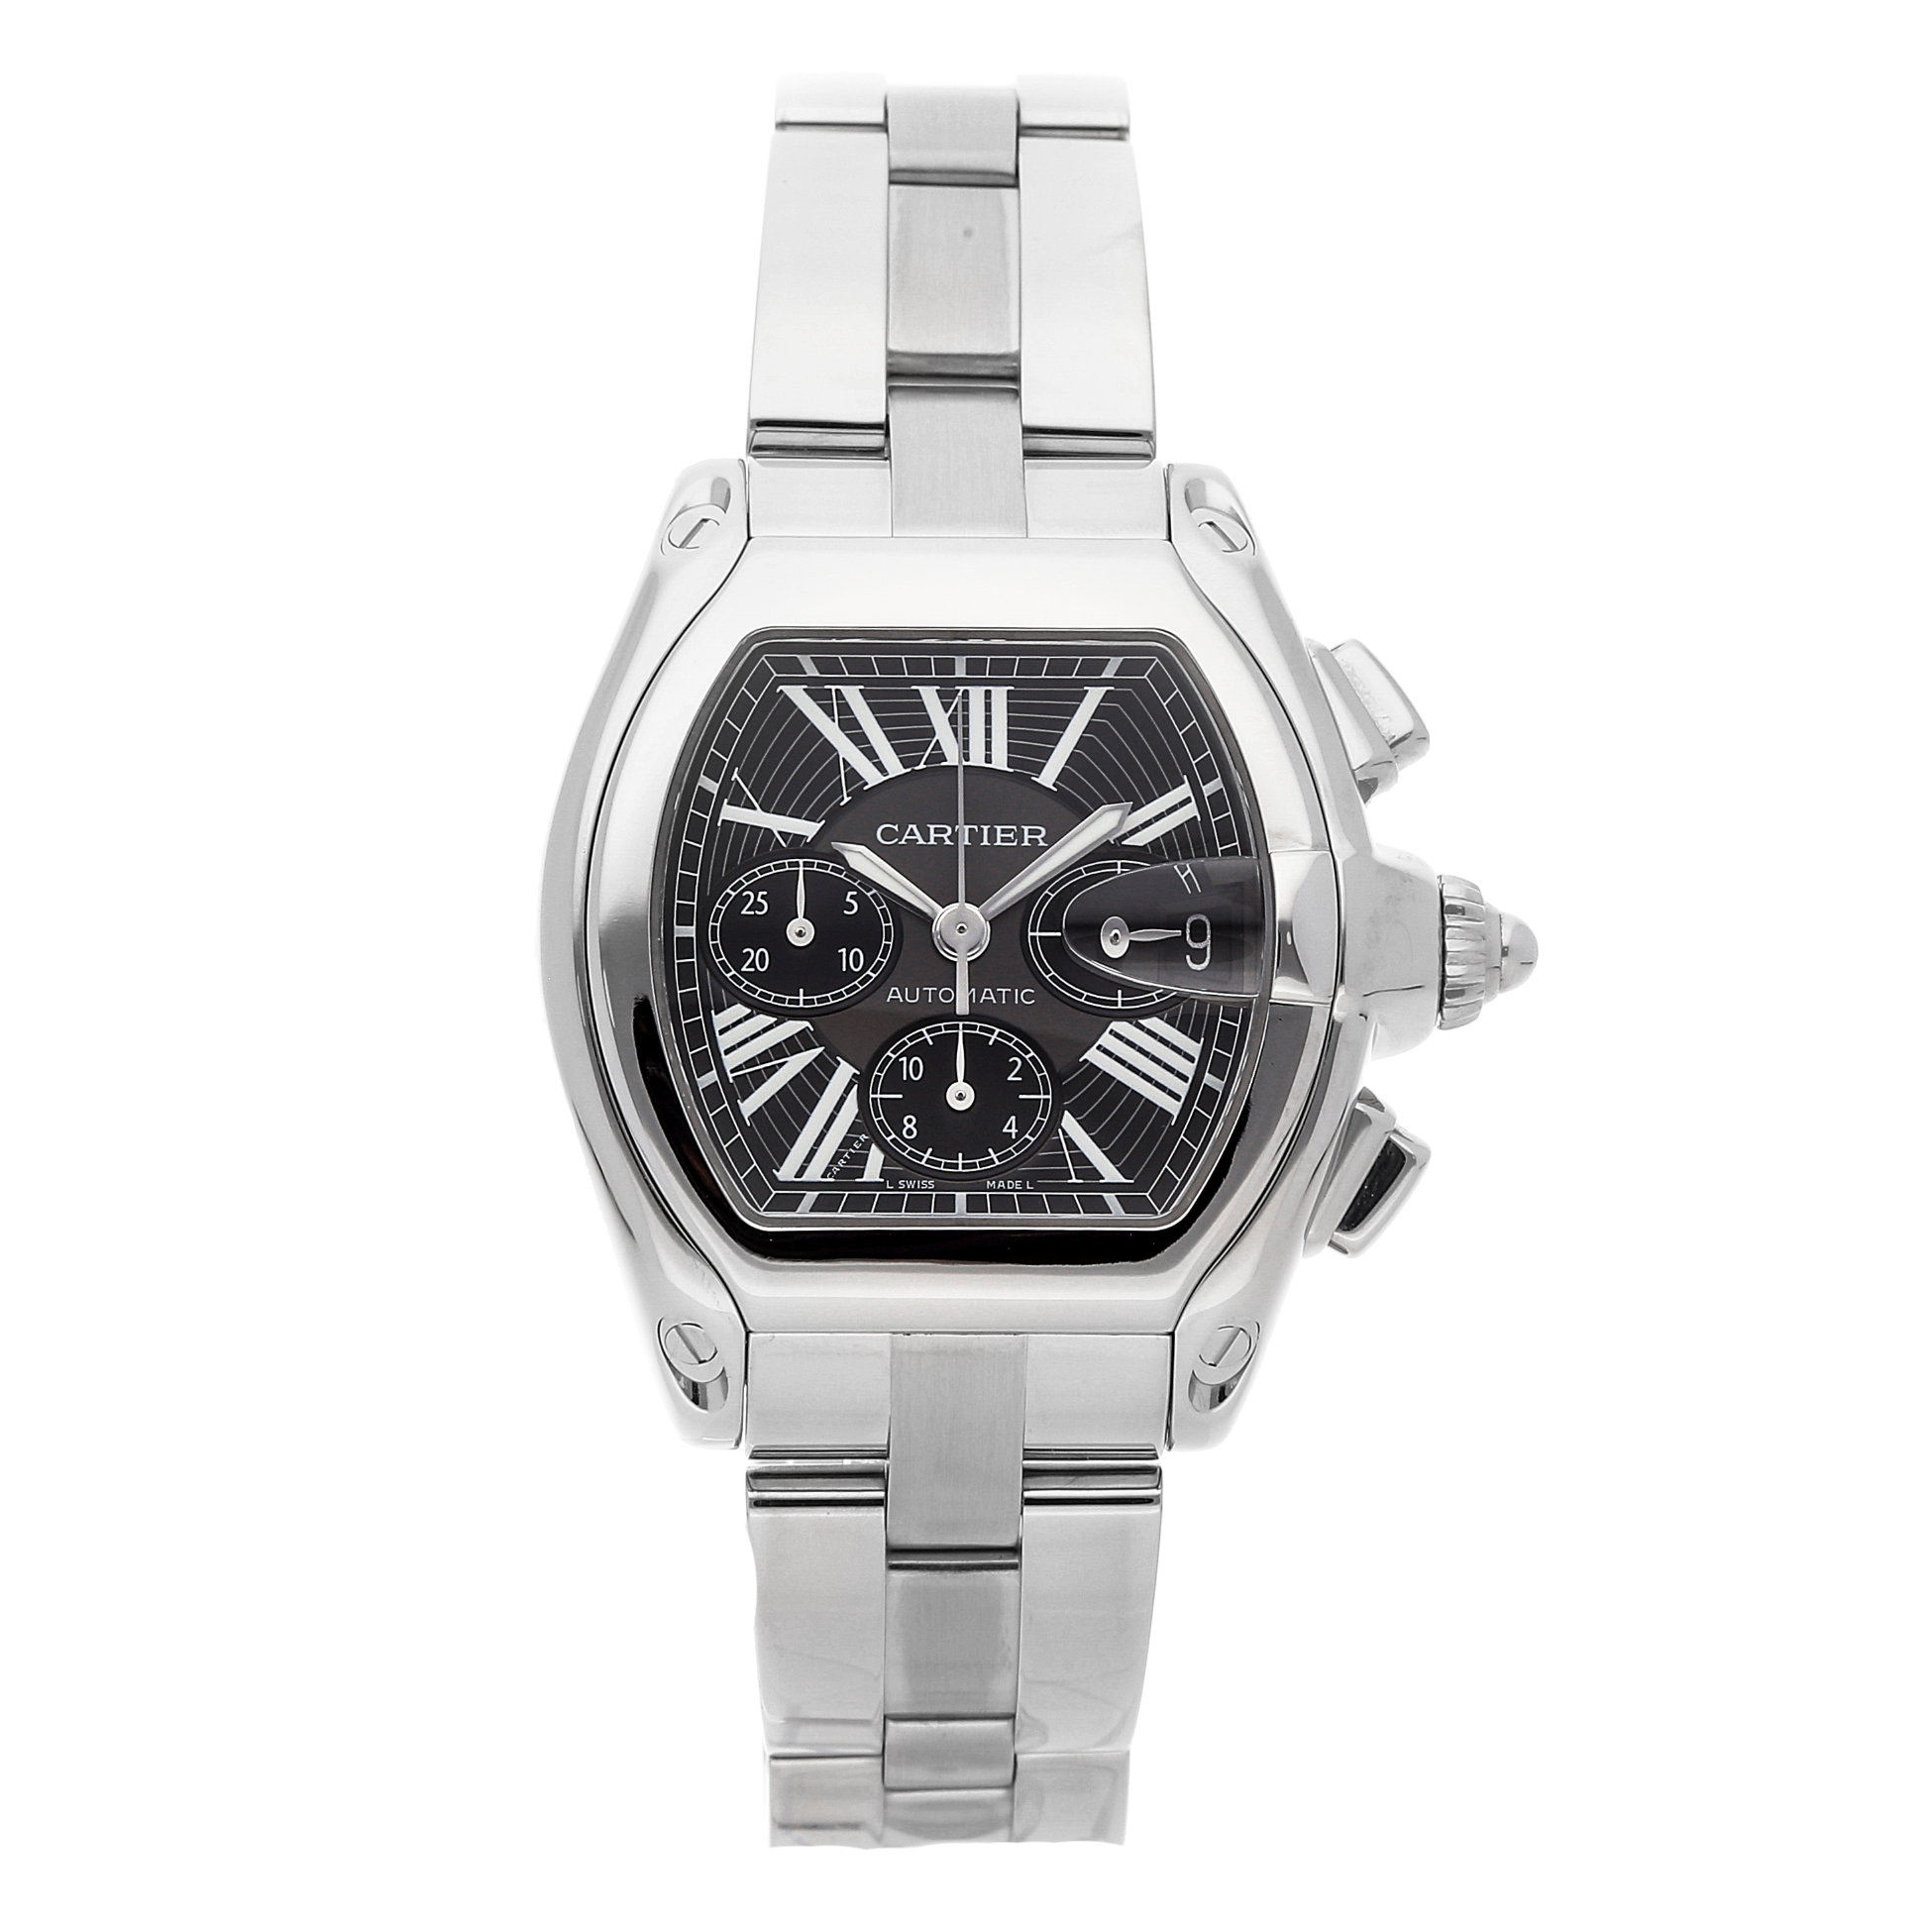 Cartier Roader Chronograph via WATCHBOX